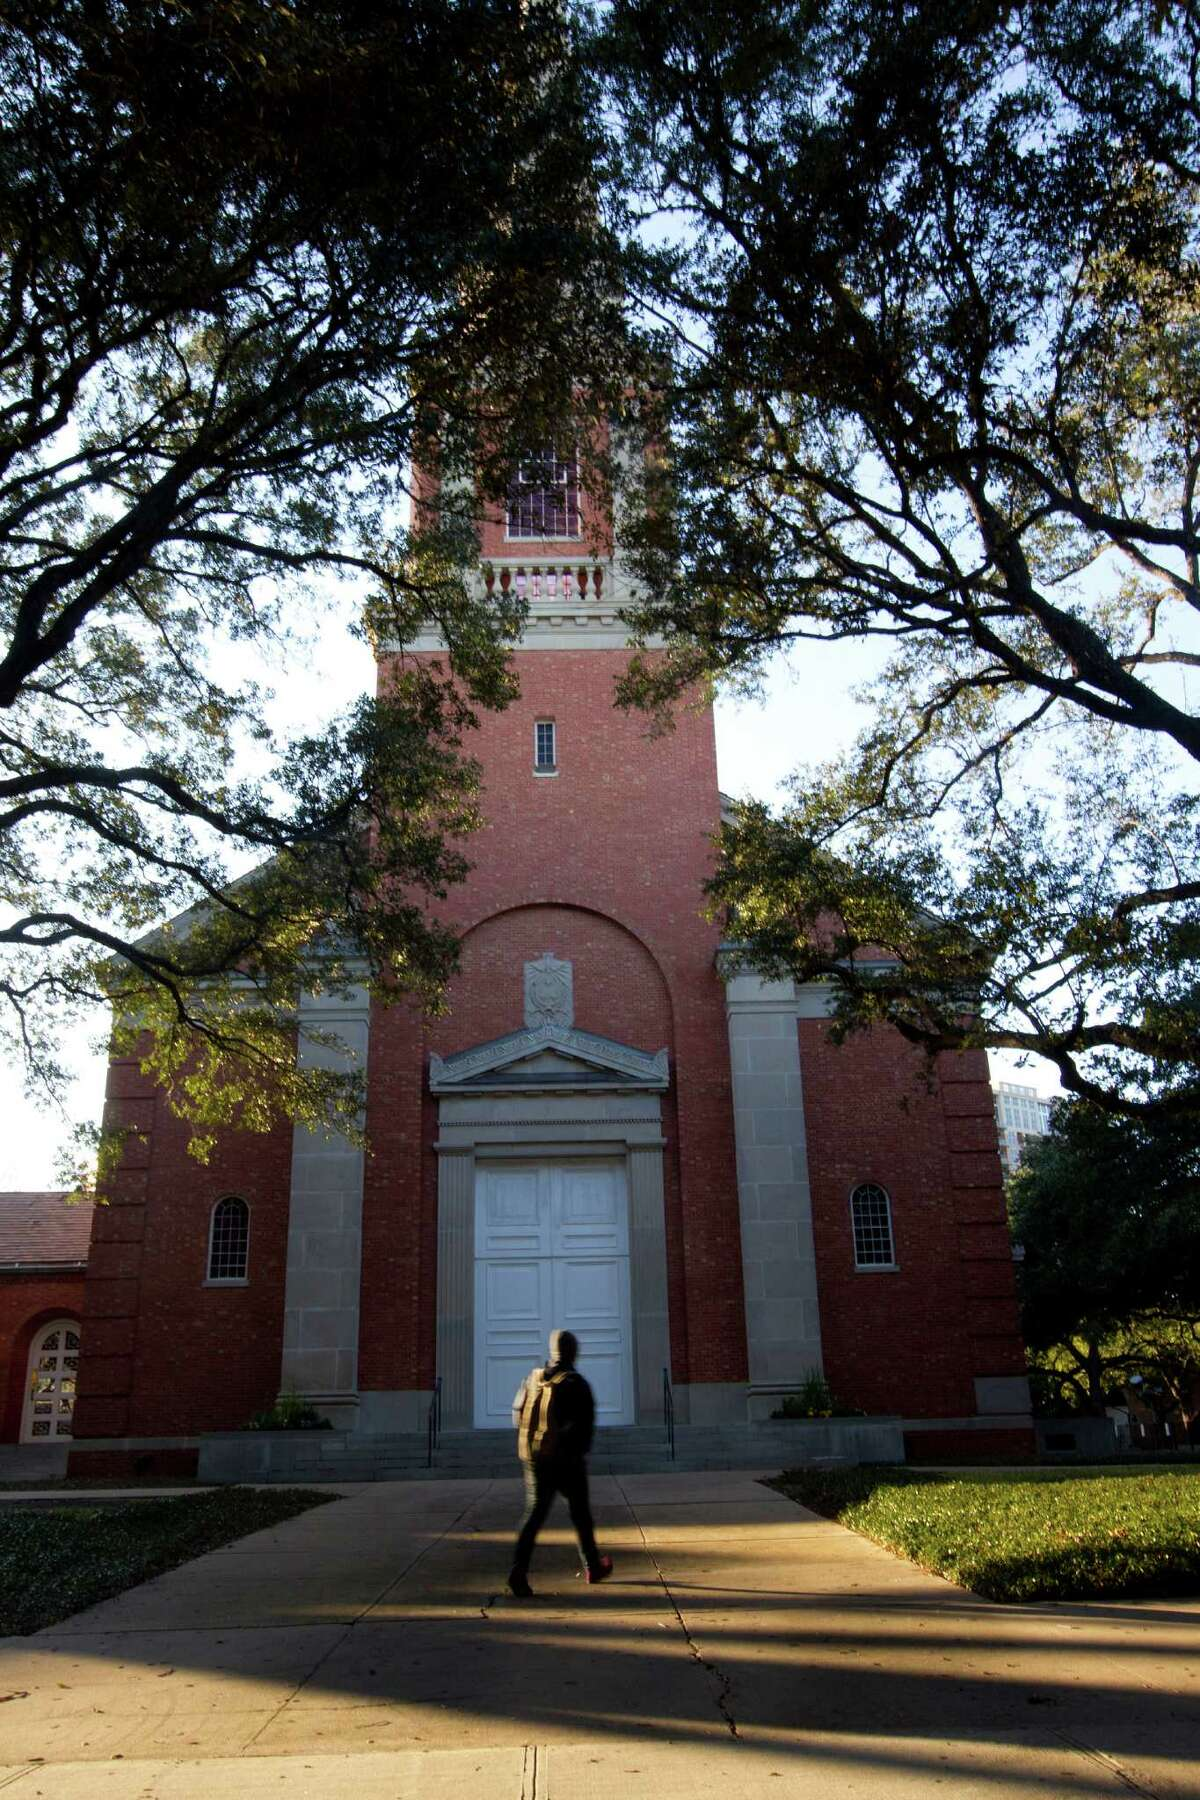 First Presbyterian Church, founded in 1839 as one of the oldest churches in the city, is preparing a vote on whether to split from the national, more liberal, body.